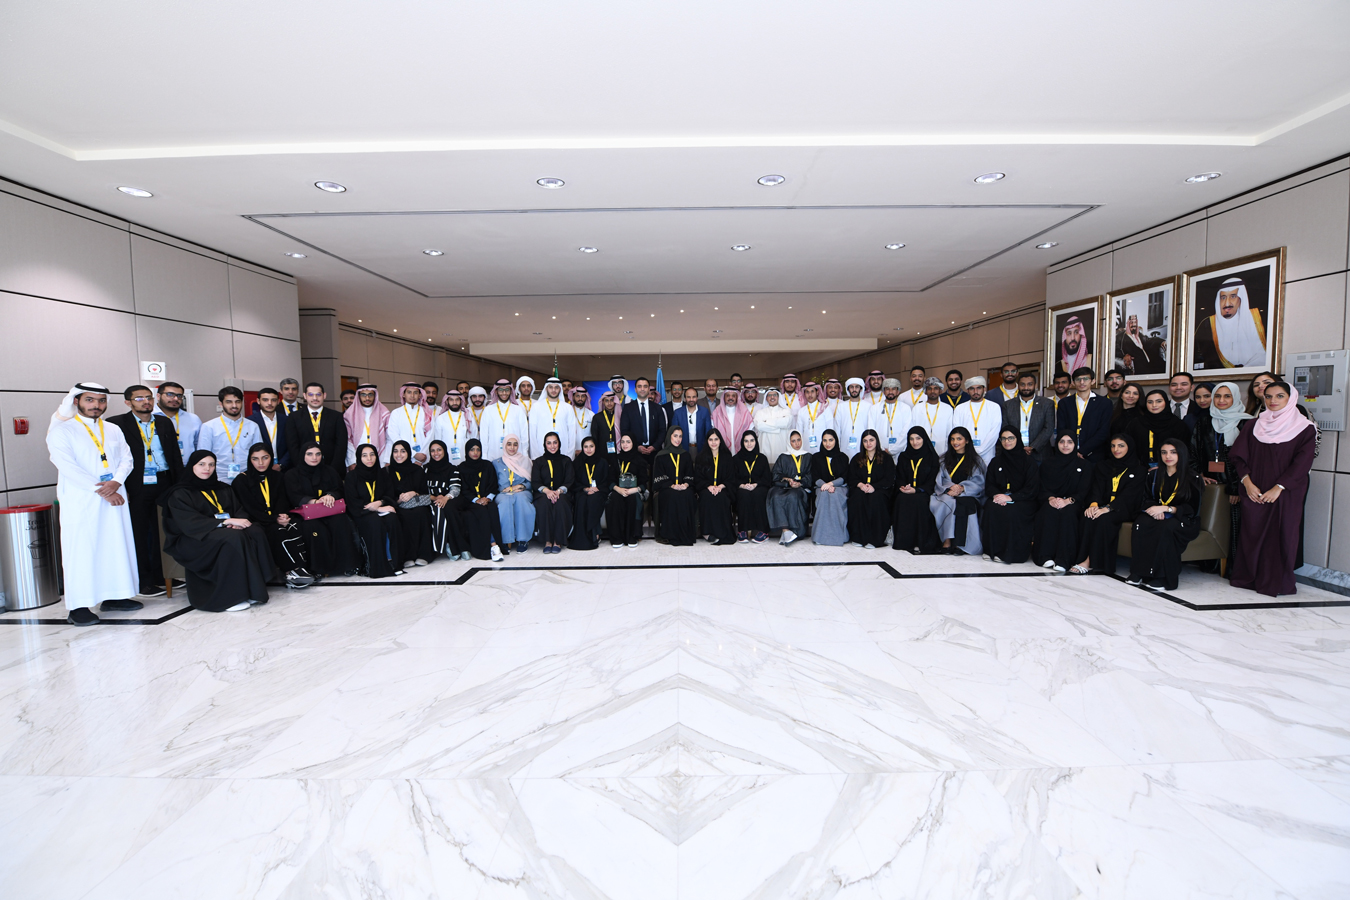 10th Edition of Leaders of Tomorrow is taking place today 12 March at Saudi Aramcos Technical Exchange Center TEC in Dhahran Saudi Arabia_Resized